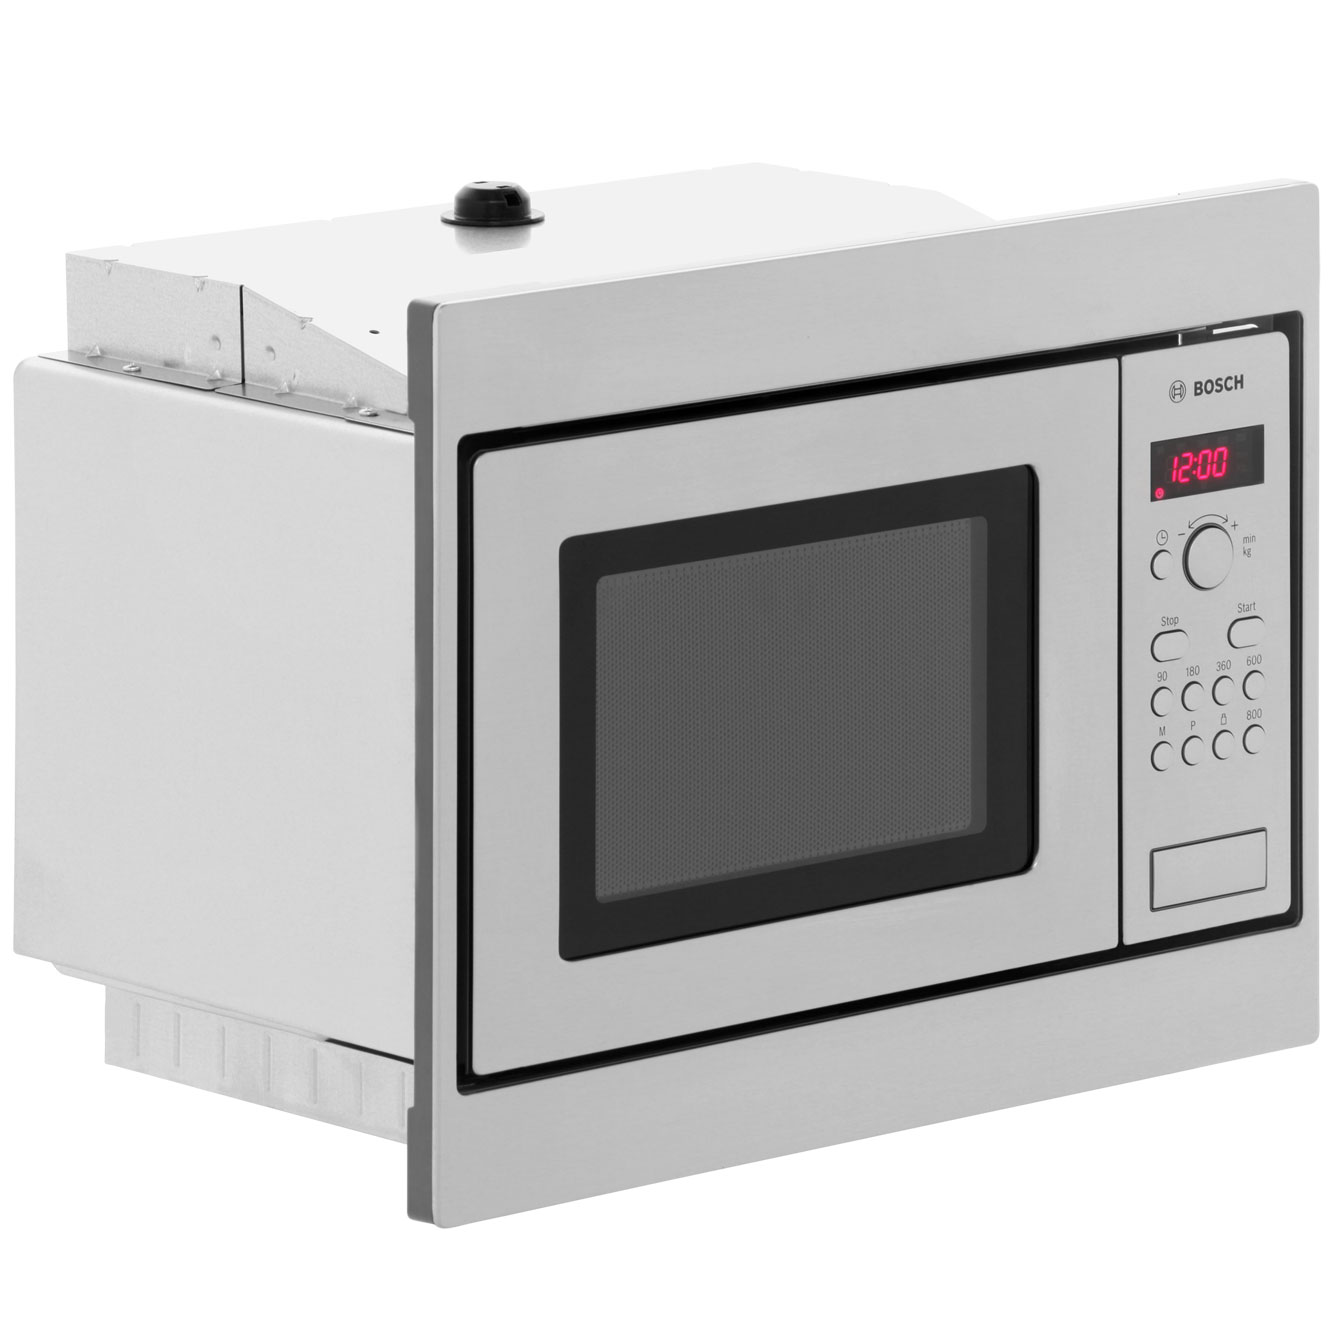 Bosch Microwaves Reviews Bestmicrowave